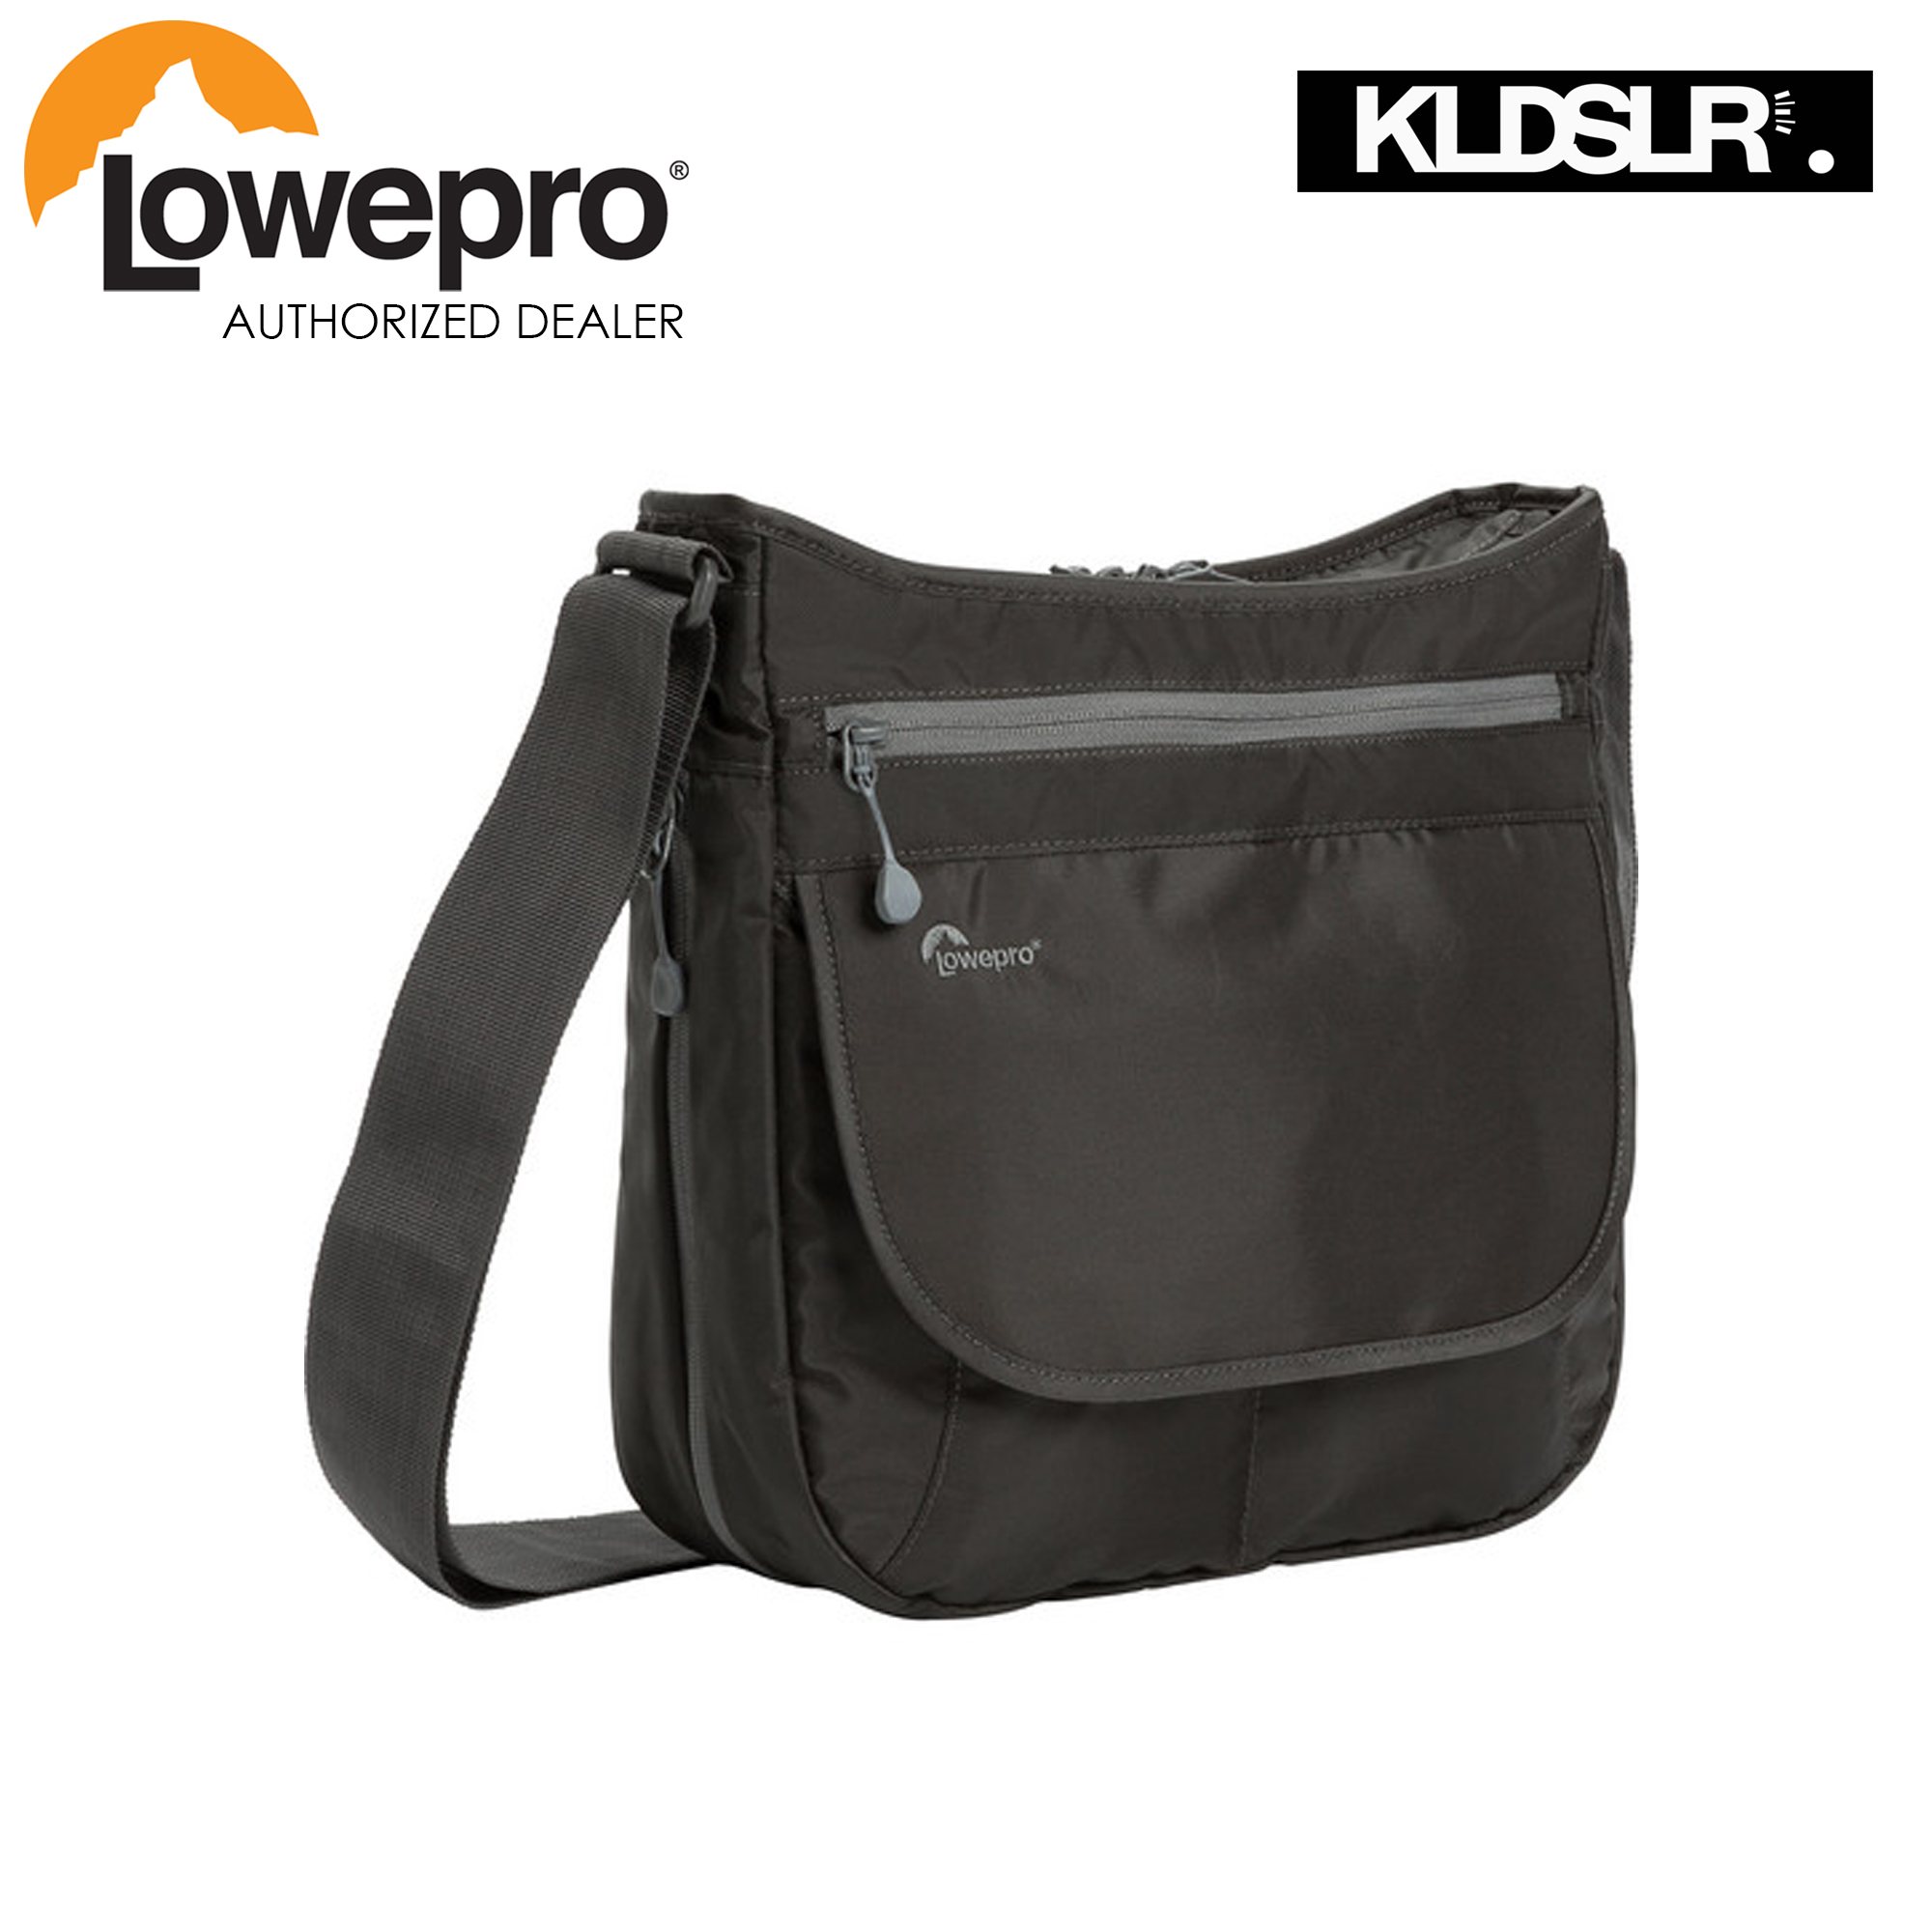 Lowepro StreamLine 250 Shoulder Bag (Slate Grey)